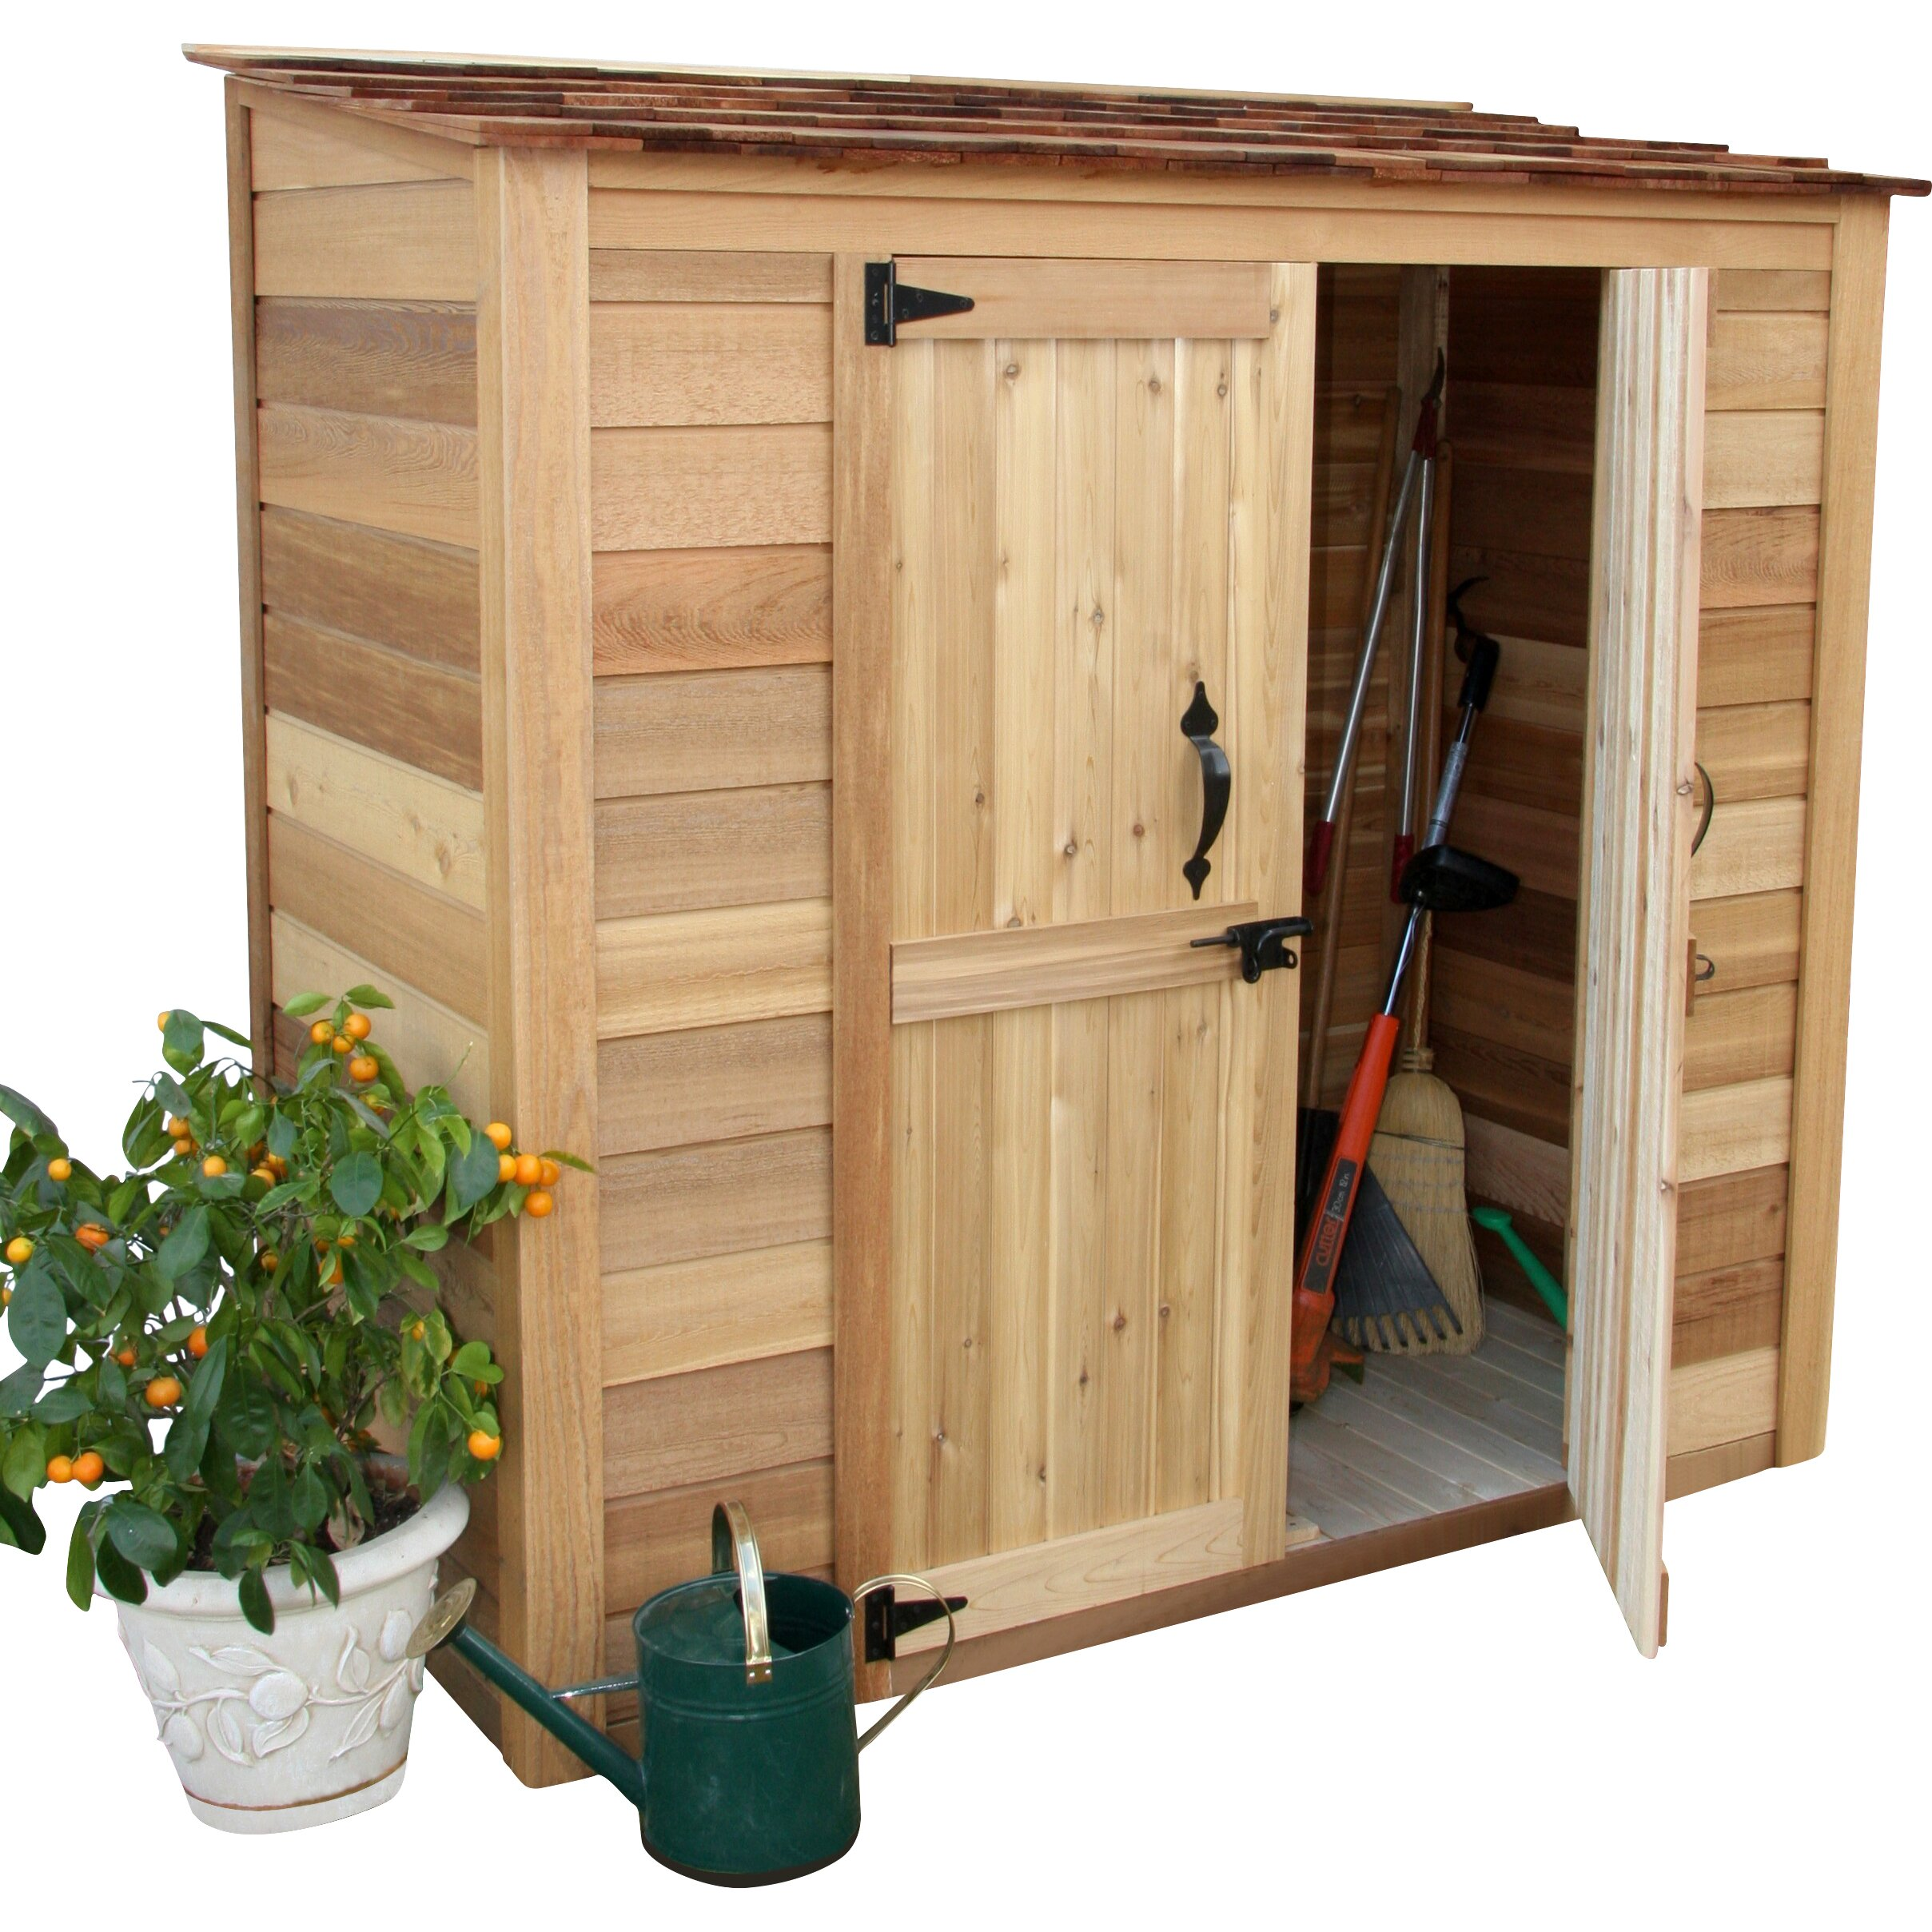 Outdoor living today garden chalet 6 ft w x 3 ft d wood for Outdoor tool shed